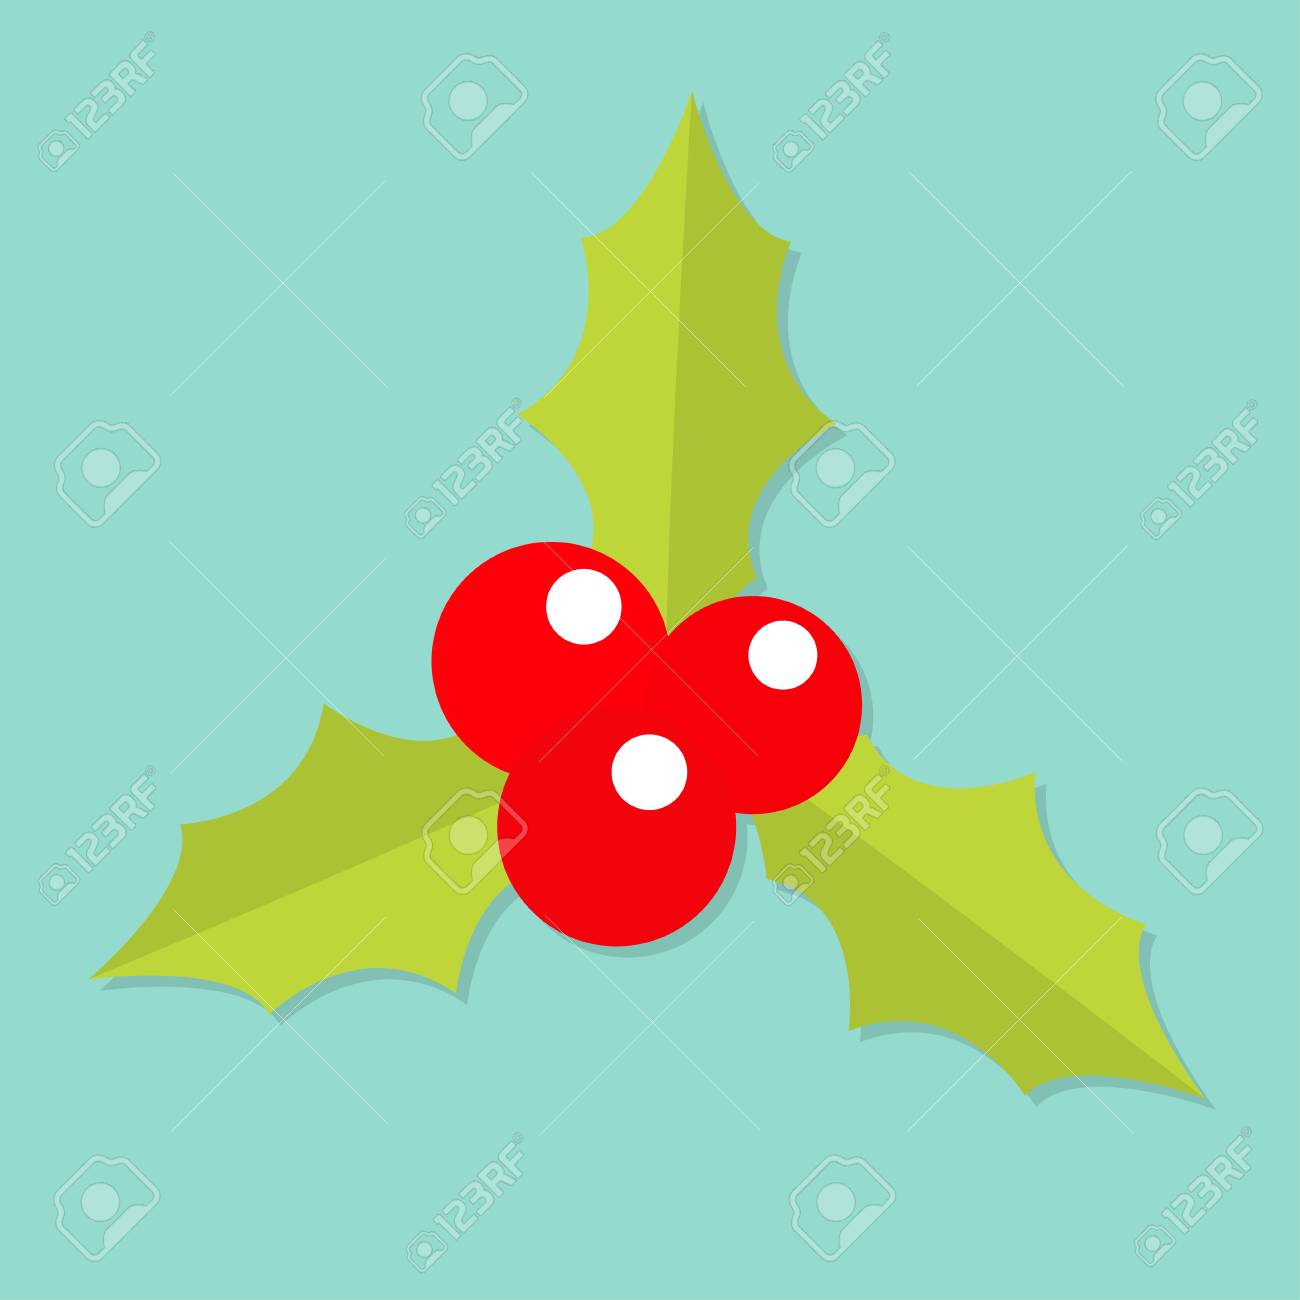 Holly Berry Icon Mistletoe Green Leaf Three Red Berries Merry